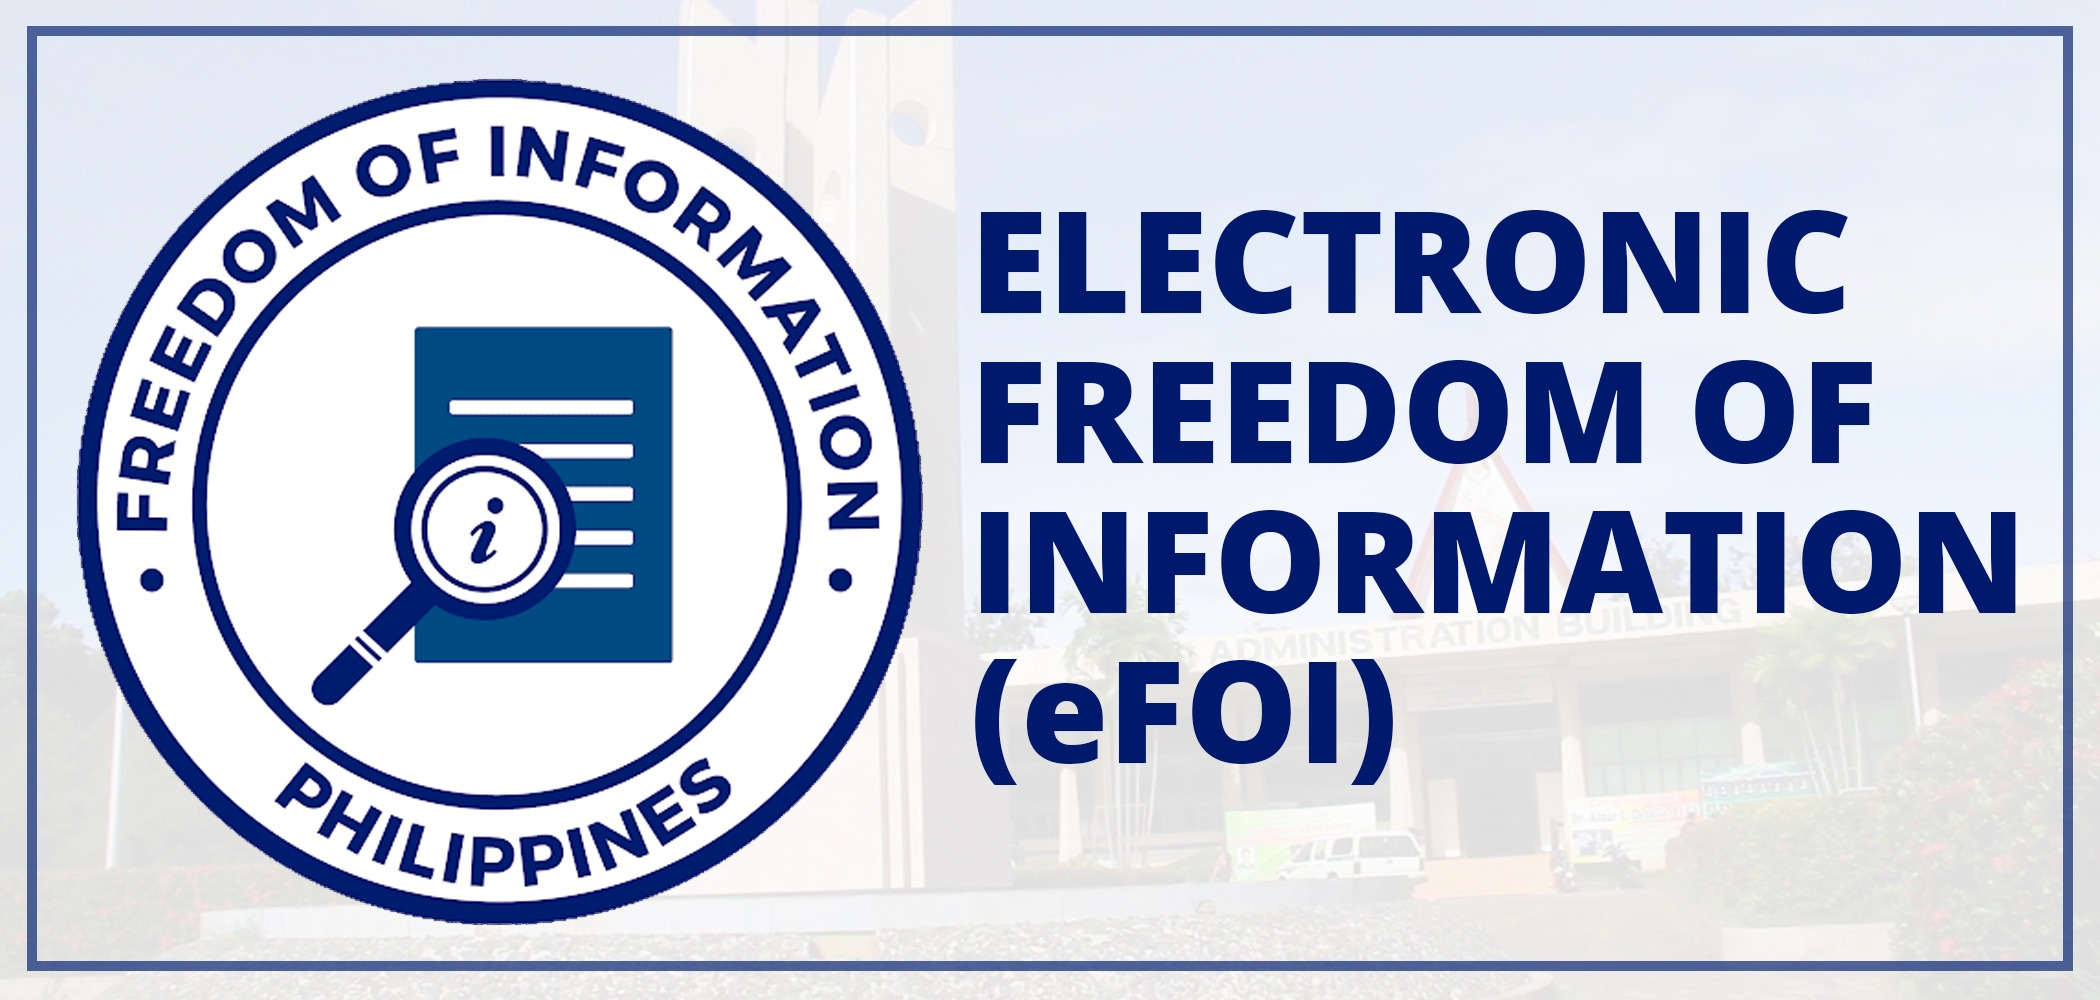 Electronic Freedom of Information